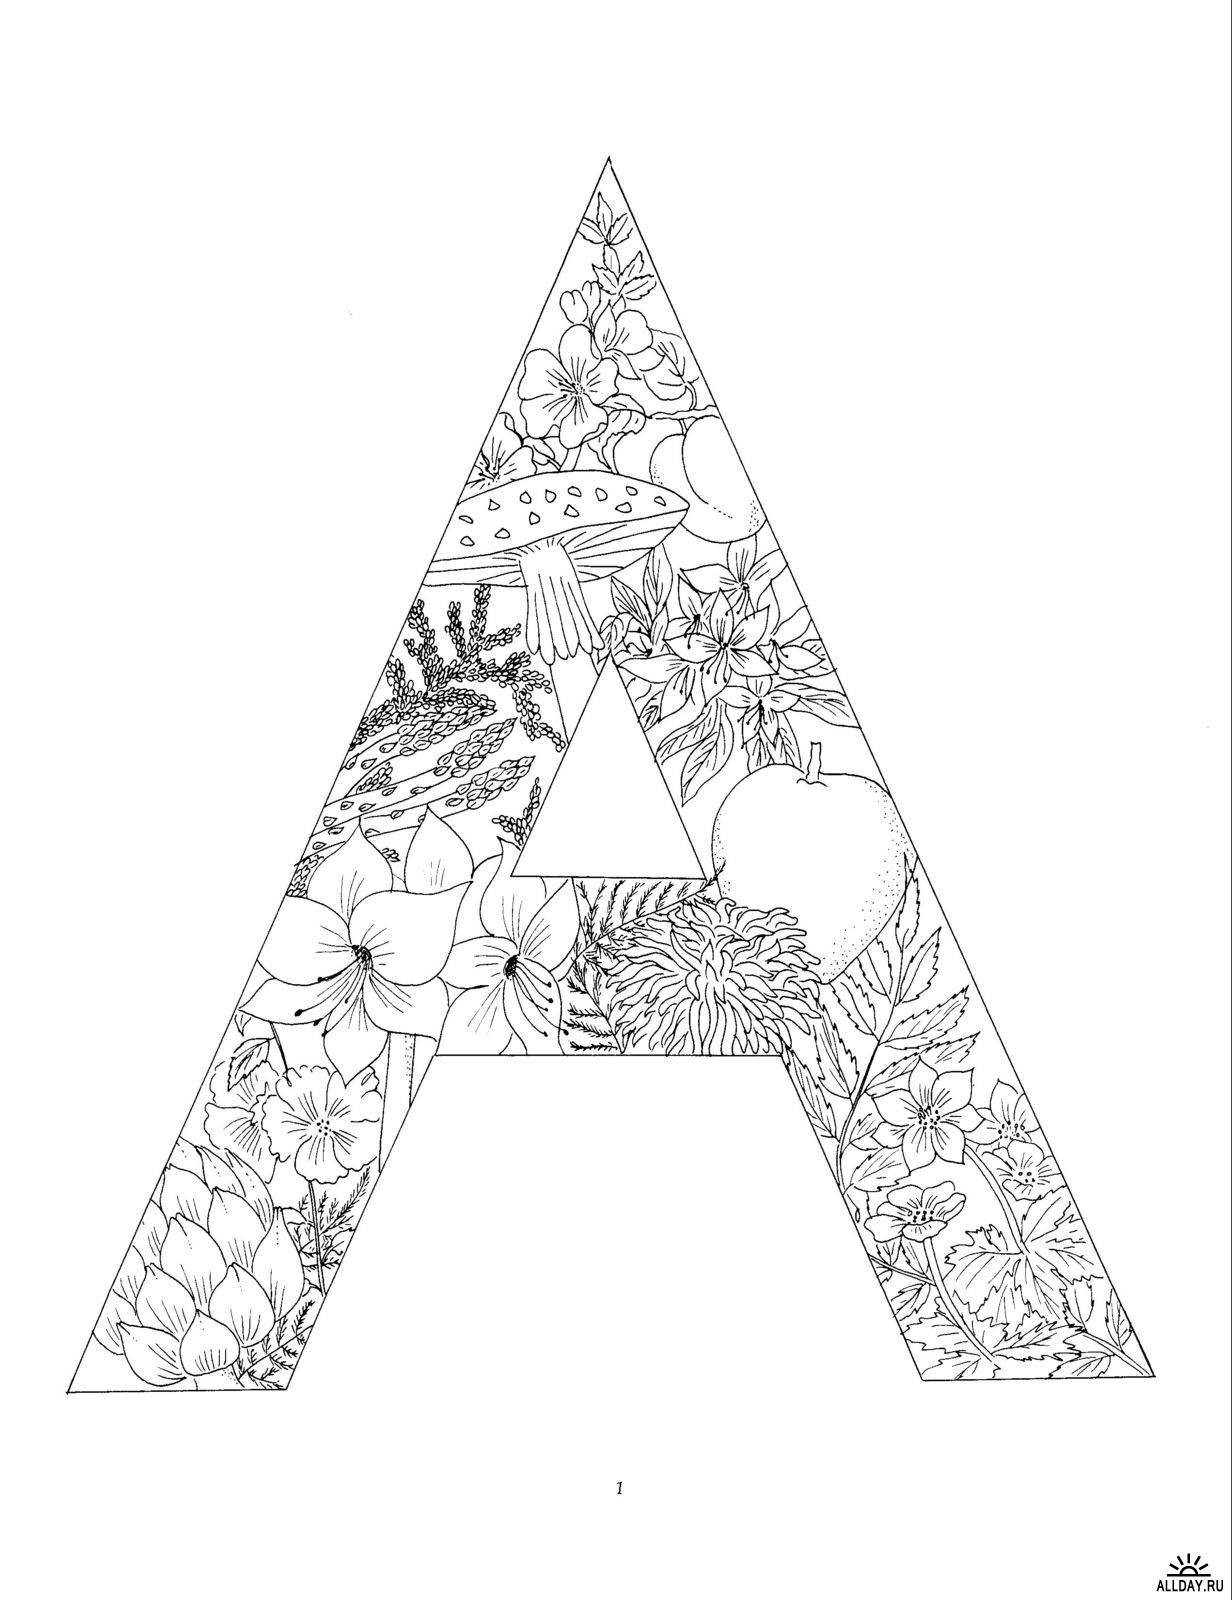 Flower alphabet coloring pages - Printable Geometric Pin By Jessie Leigh Oconnor On Drawing